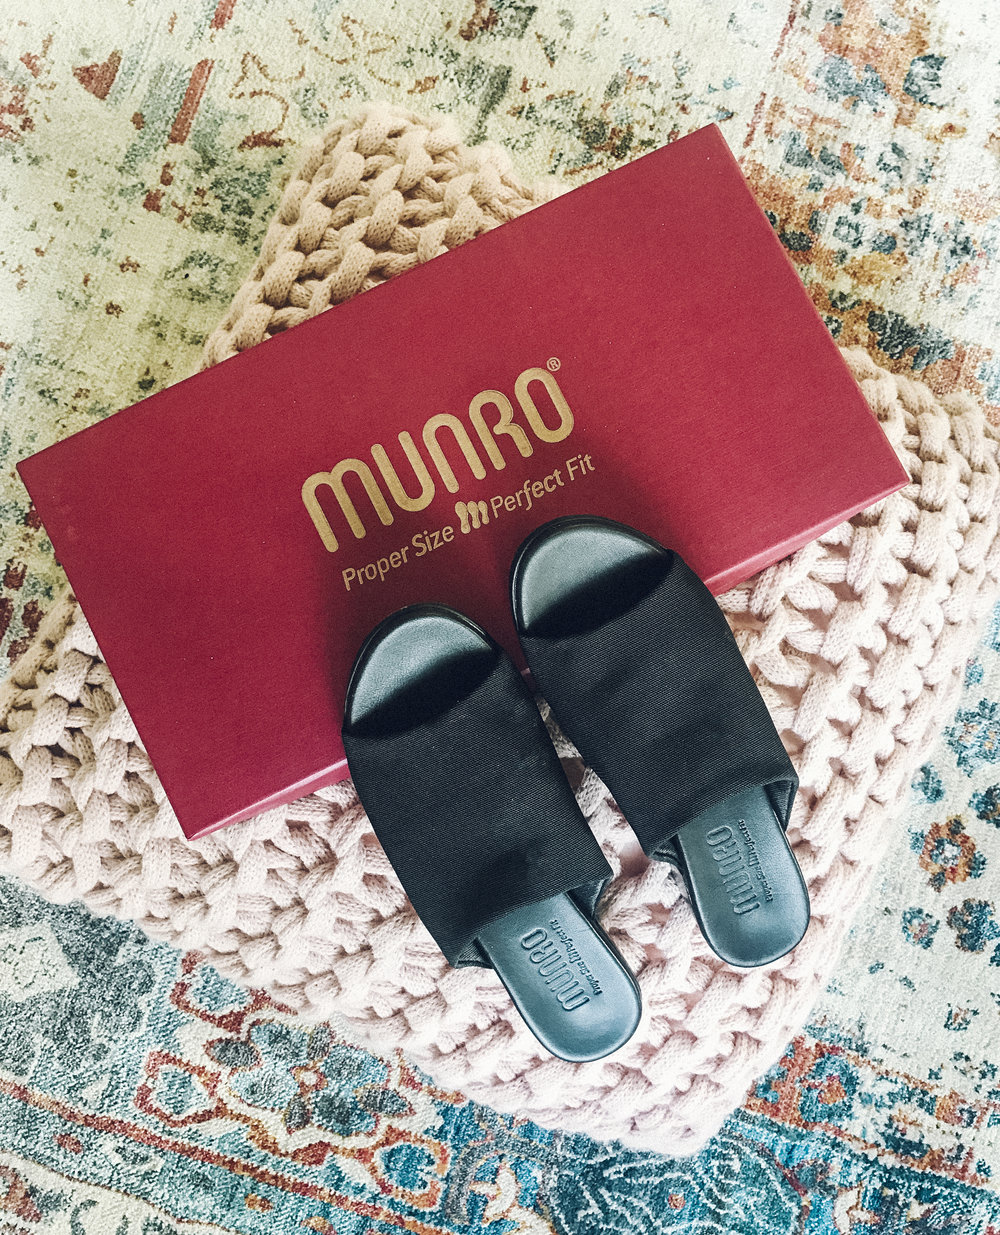 60956d2d2416 The shoe I like to put on for all occasions is the Munro Beth slide sandal.  It s a single strap stretch sandal on a 1 inch heel and a very soft  comfortable ...